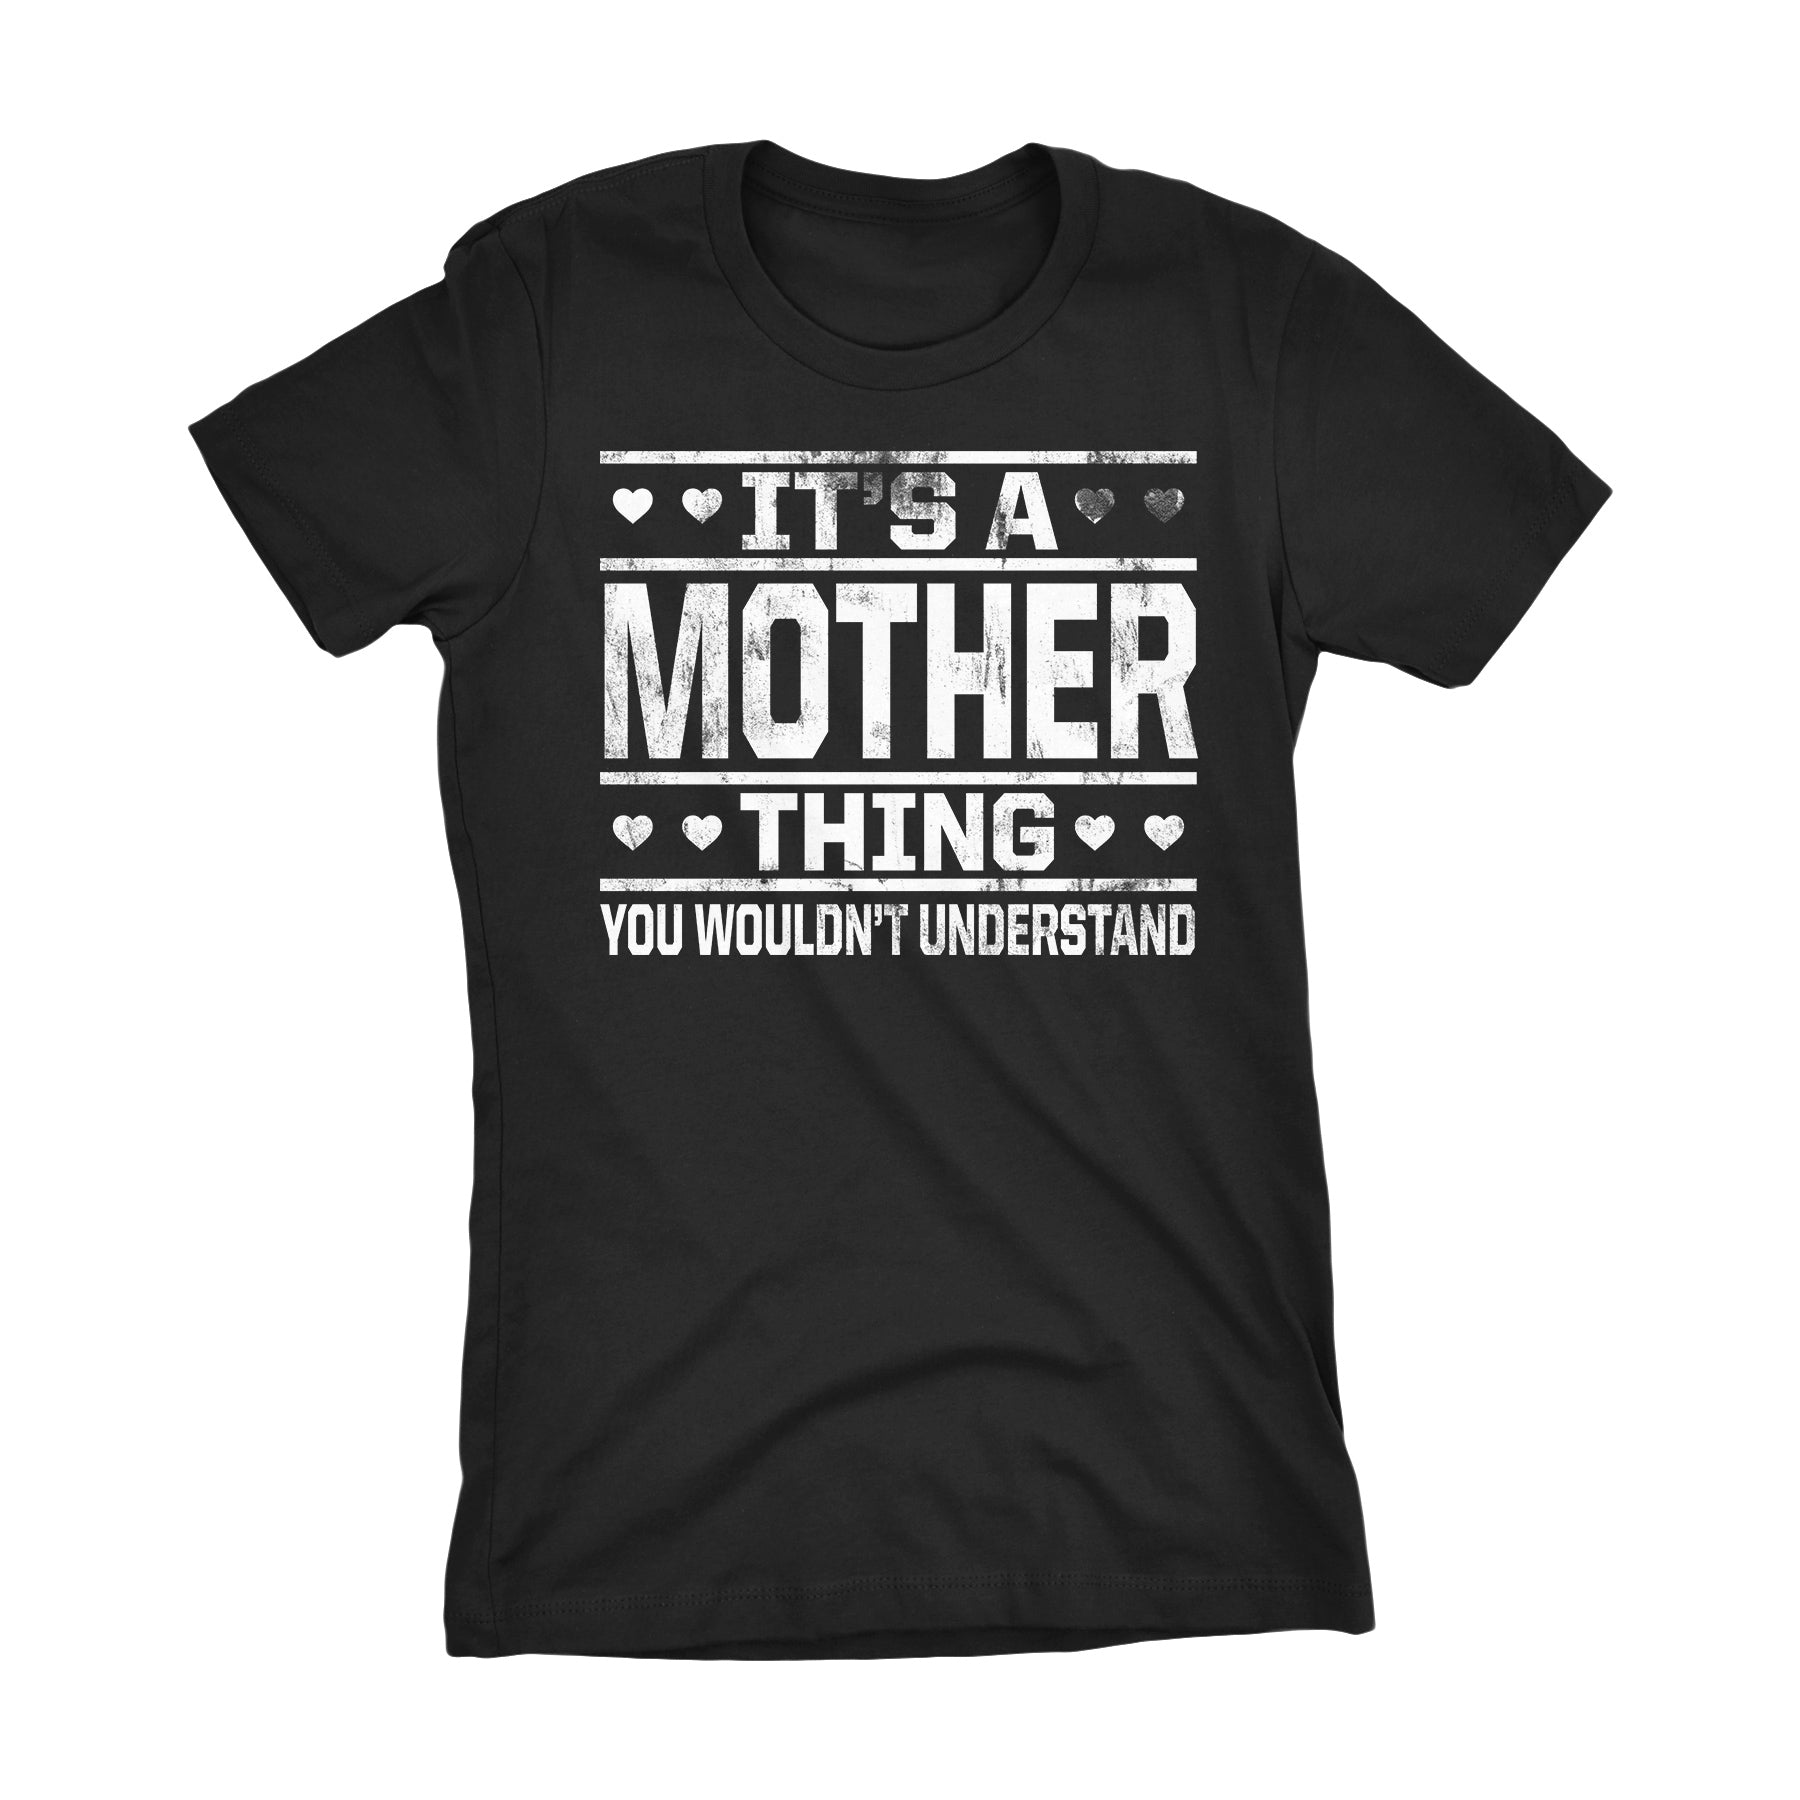 It's A MOTHER Thing You Wouldn't Understand - 002 Mom Ladies Fit T-shirt